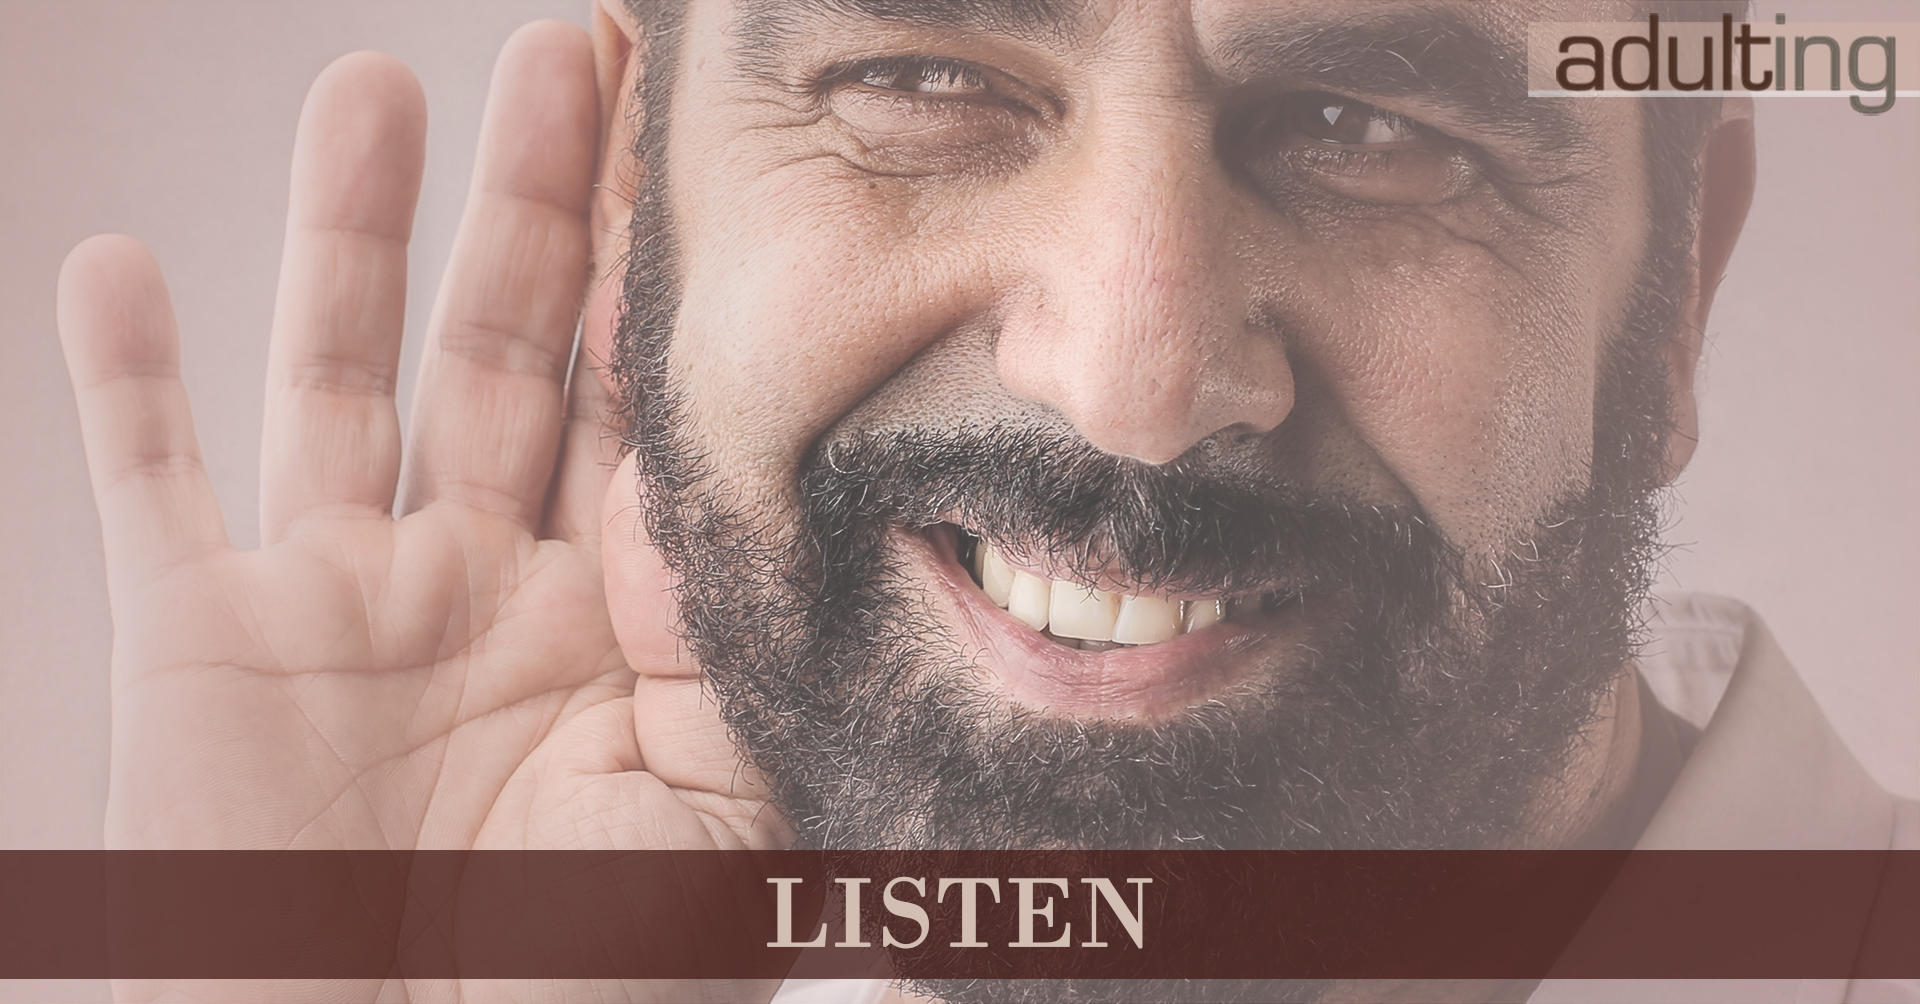 No More Textual Relations: Develop Meaningful Connections: Listen